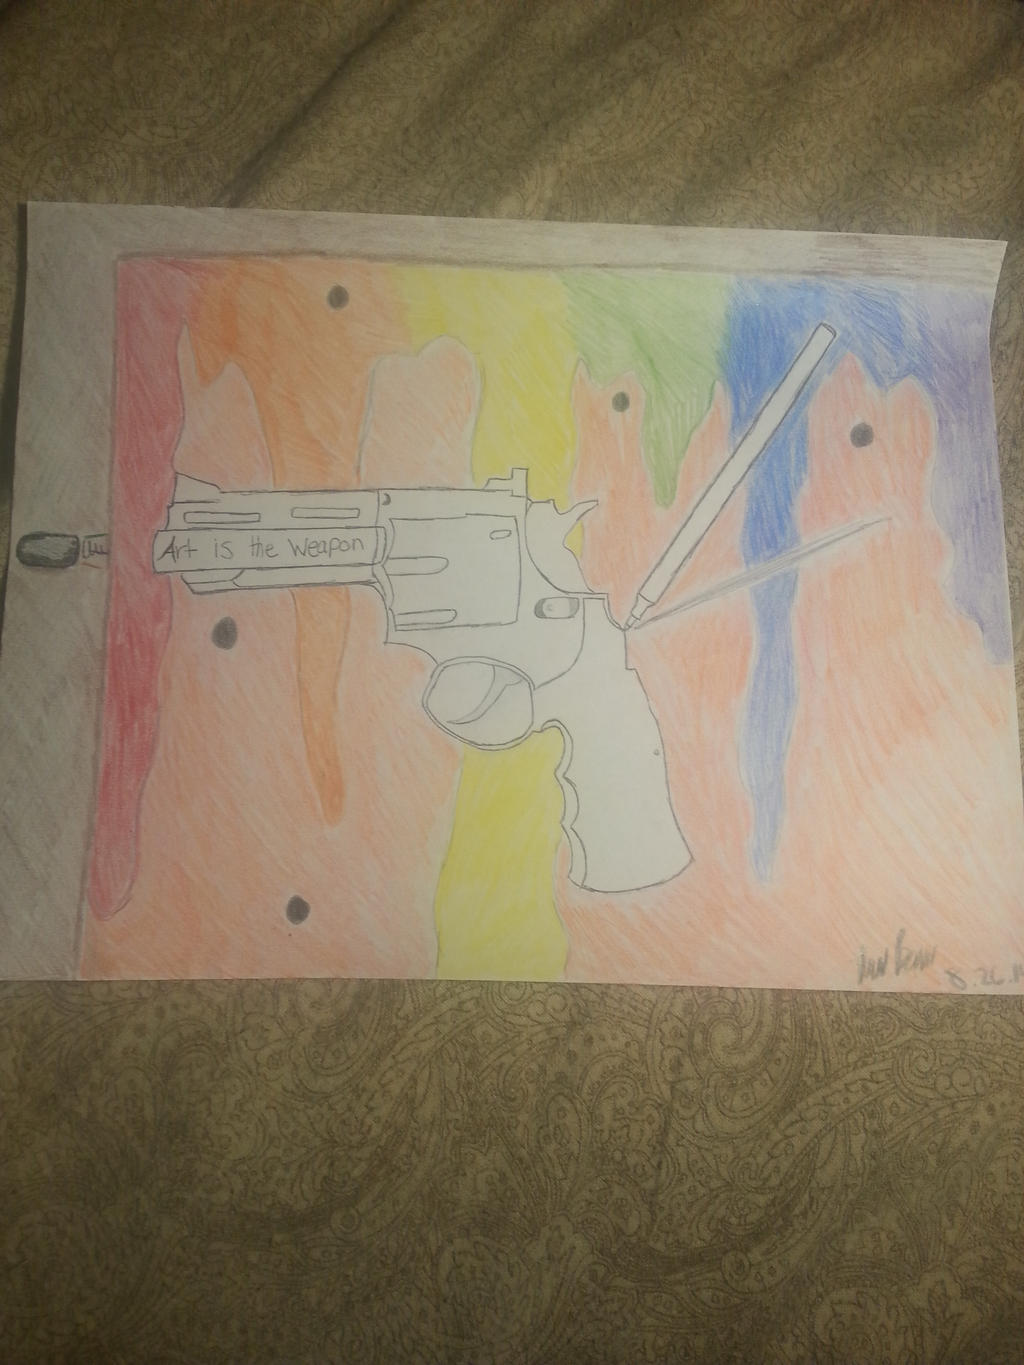 Art is the weapon by WasOriginal